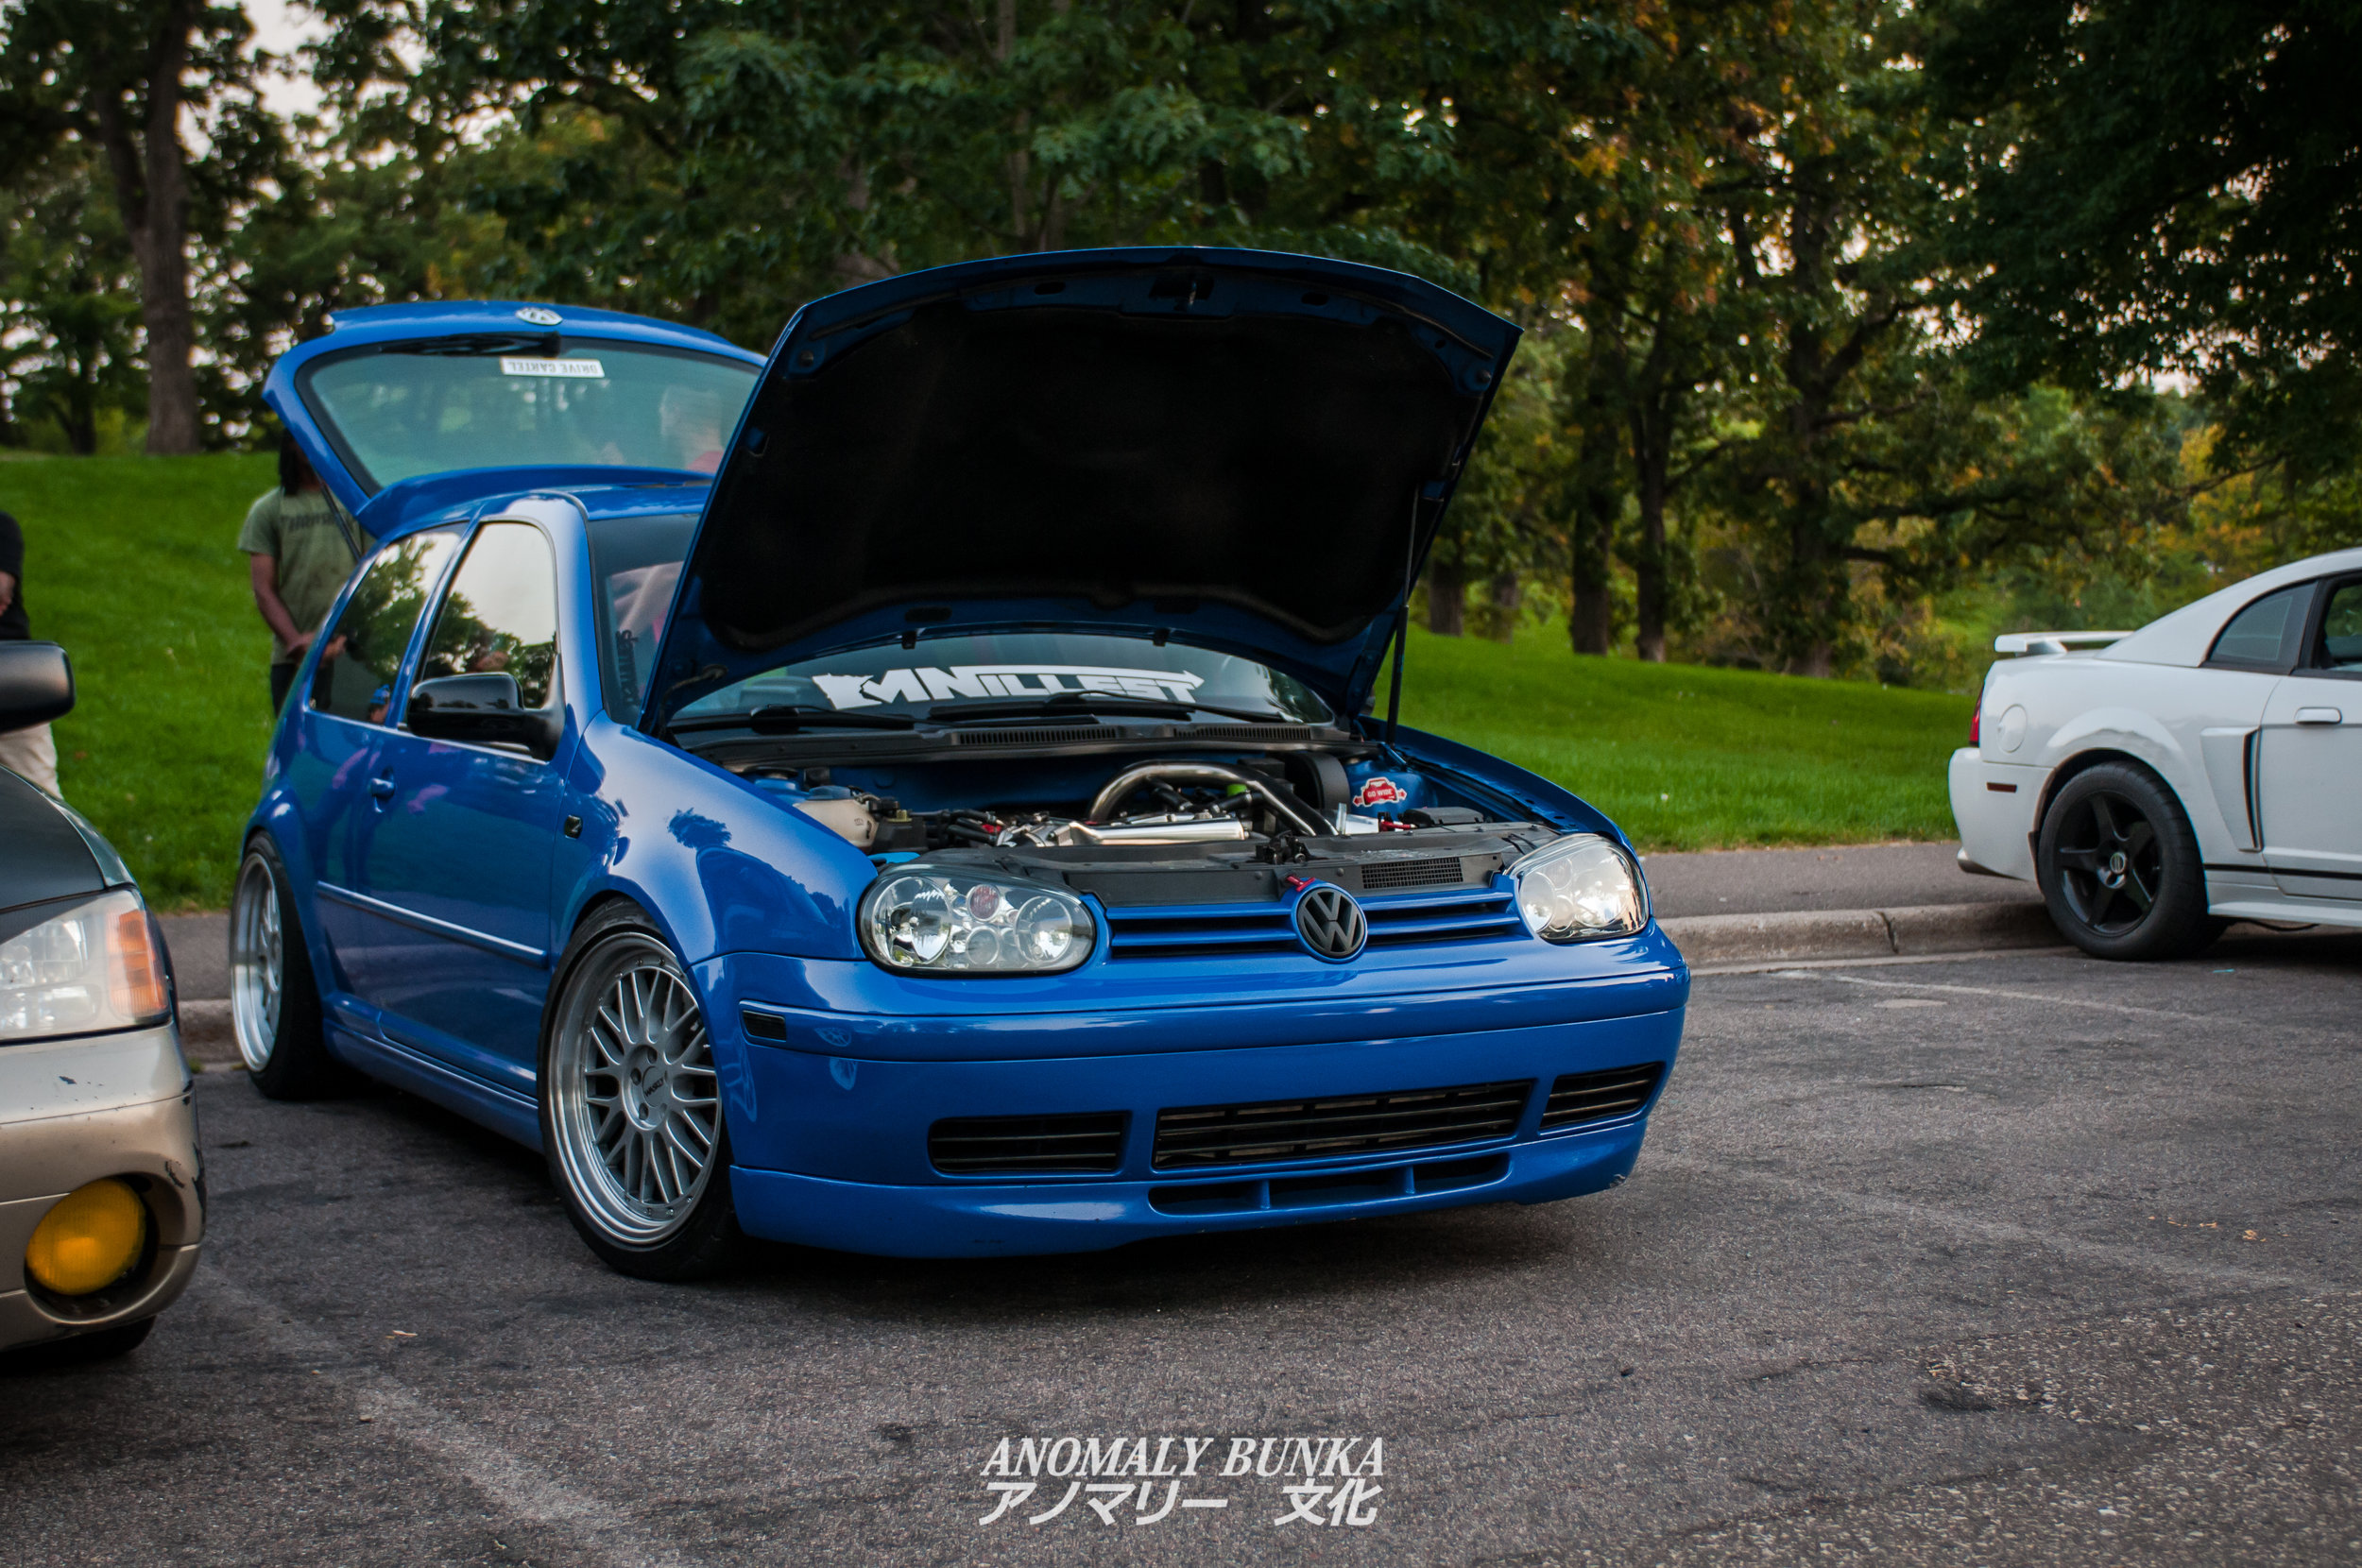 This 20th Anniversary Edition GTI belongs to Josh Hernandez, one of the admins of MN Illest